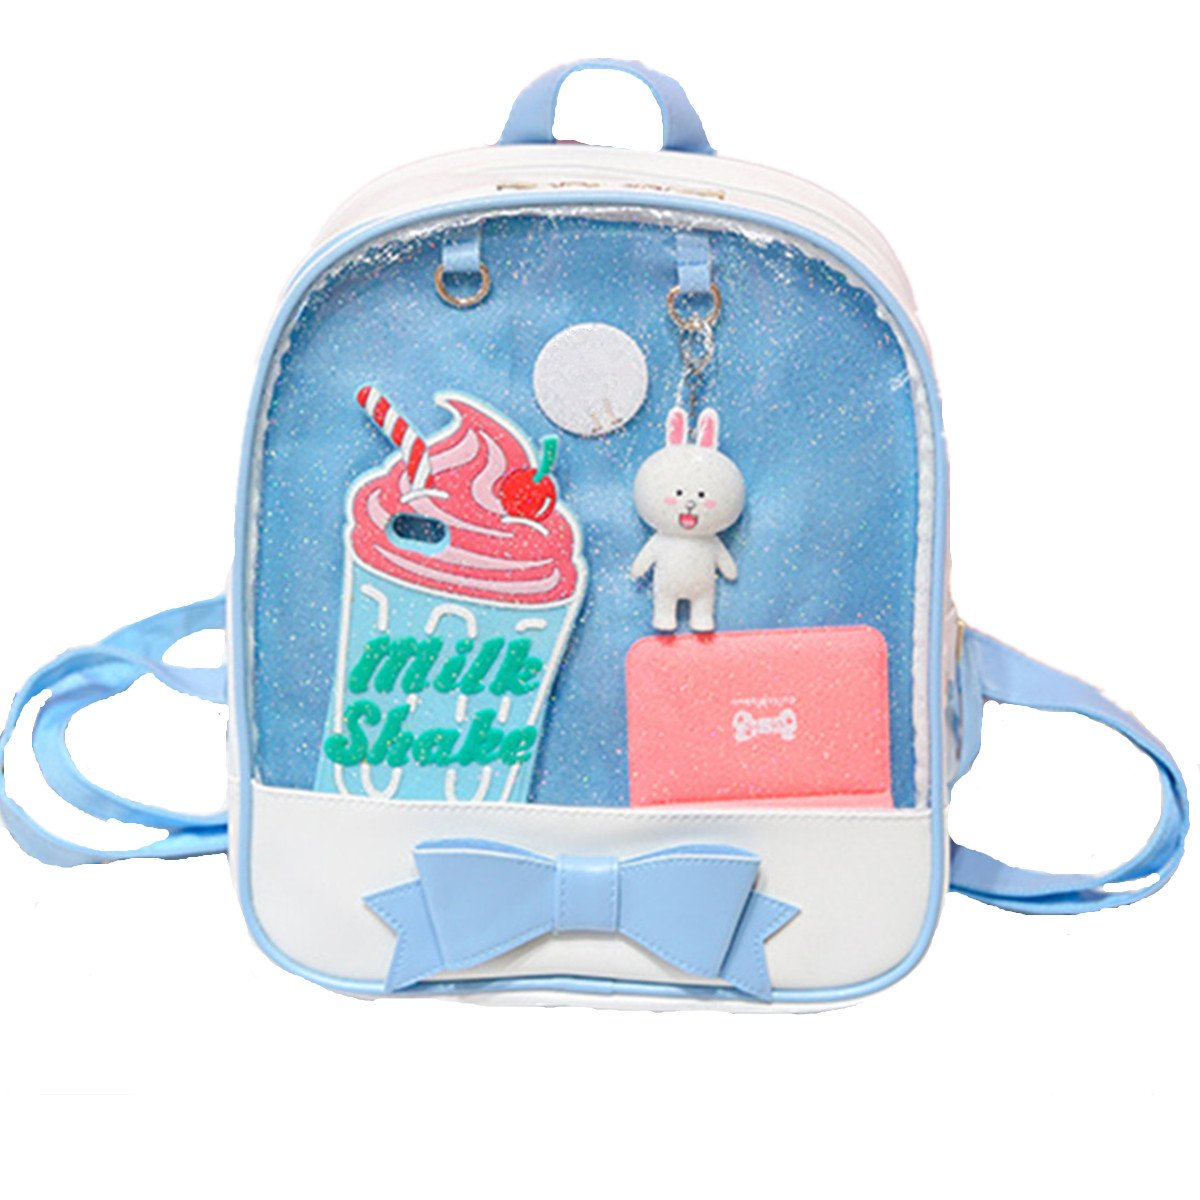 Smilecoco Candy Leather Cat Backpack Plastic Transparent Beach Girls School Bag (Black)